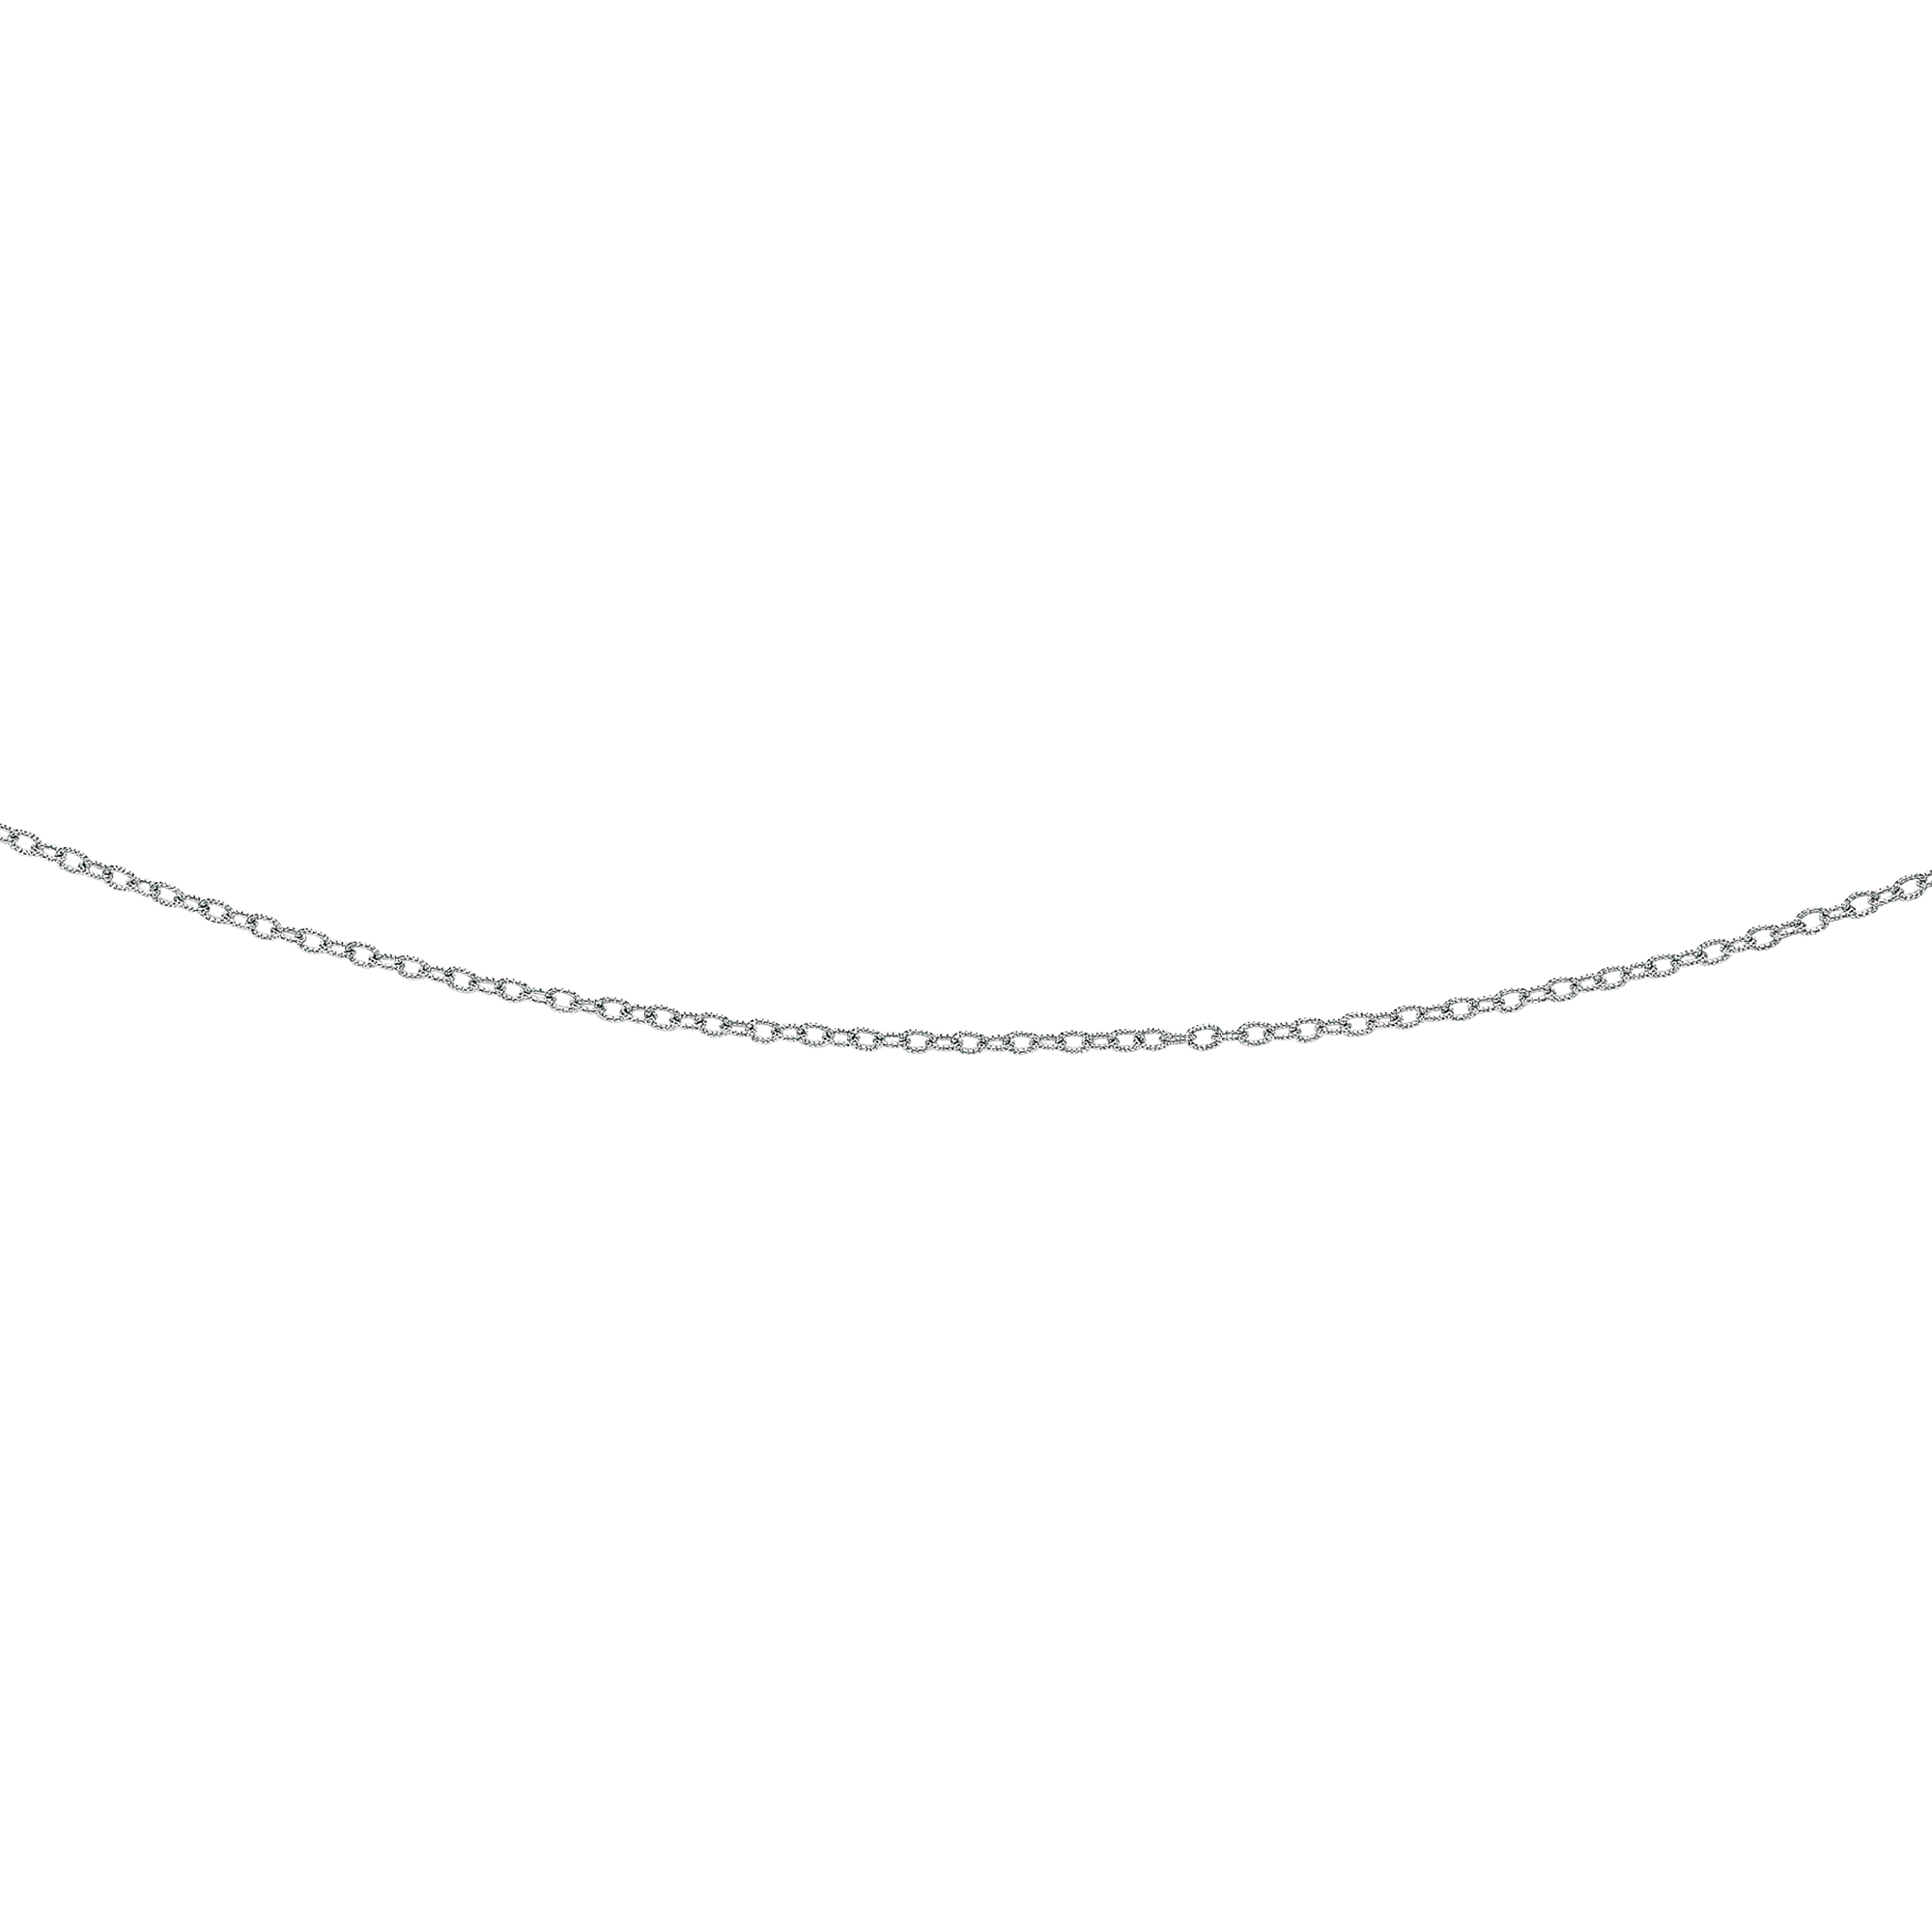 LUXURMAN Solid 14k Gold Cable Chain For Women Textured Link 2.5mm Wide